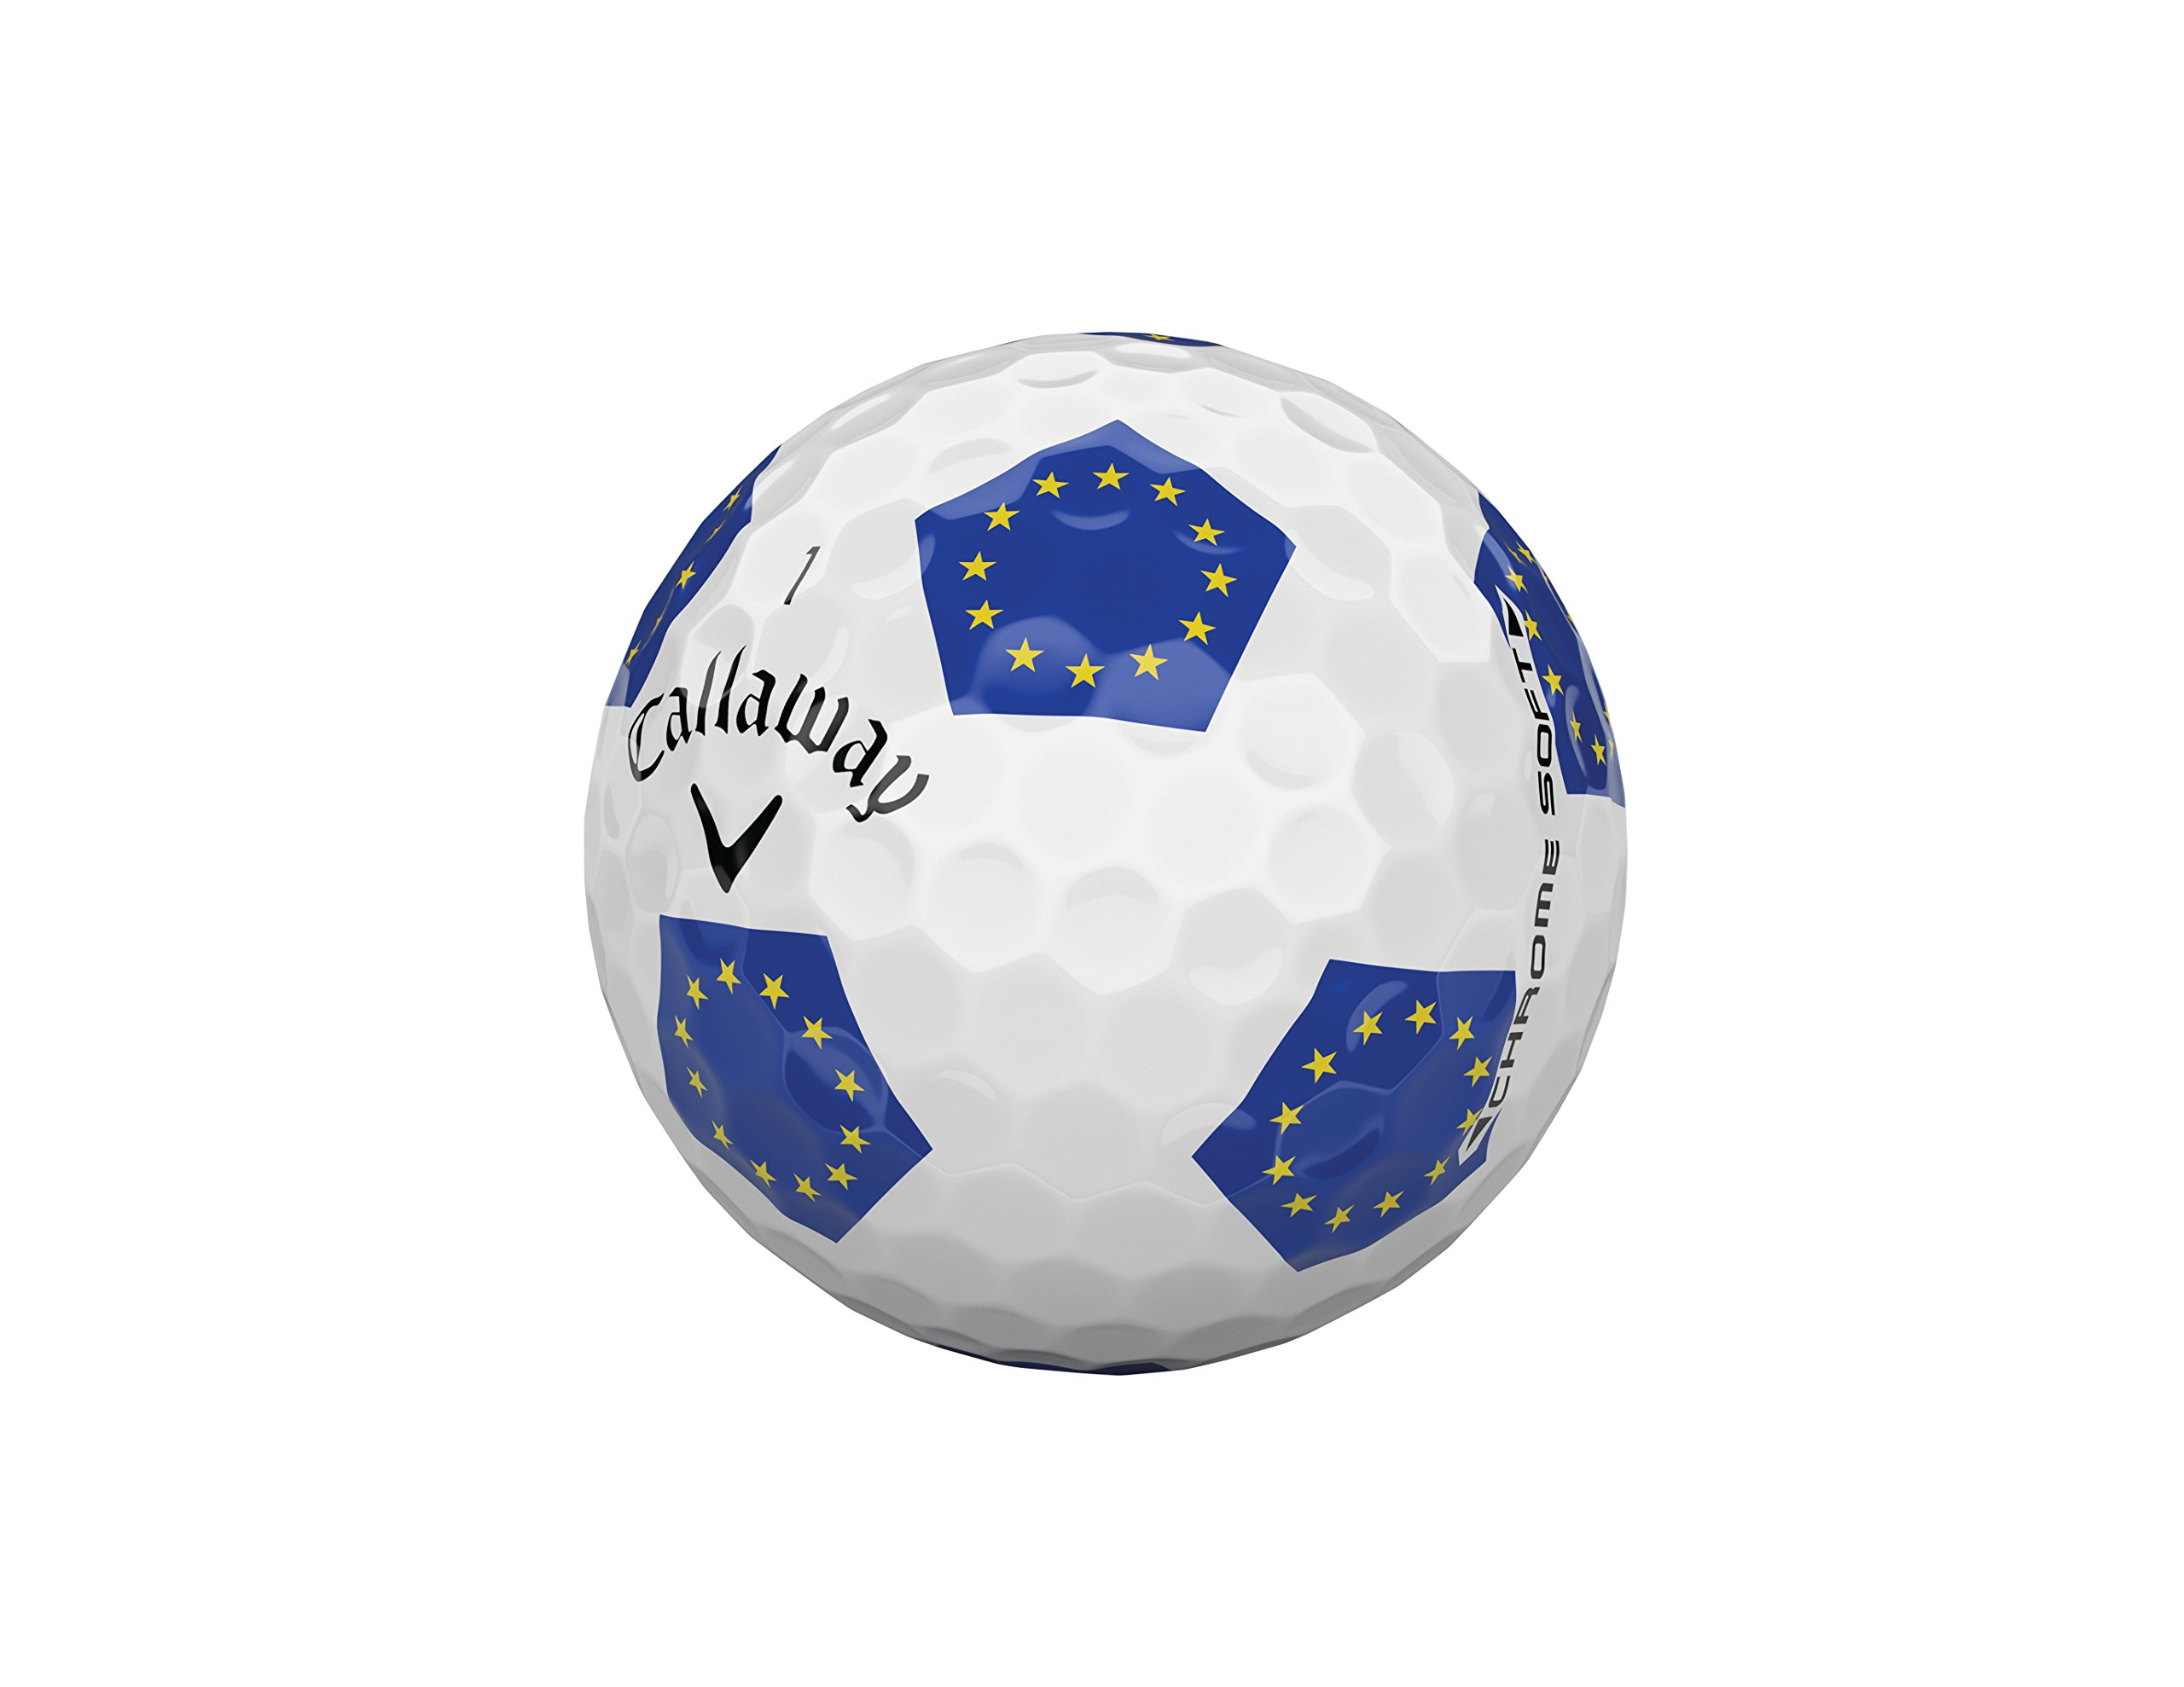 Callaway Golf One Dozen Chrome Soft 18 European Union Truvis Golf Ball